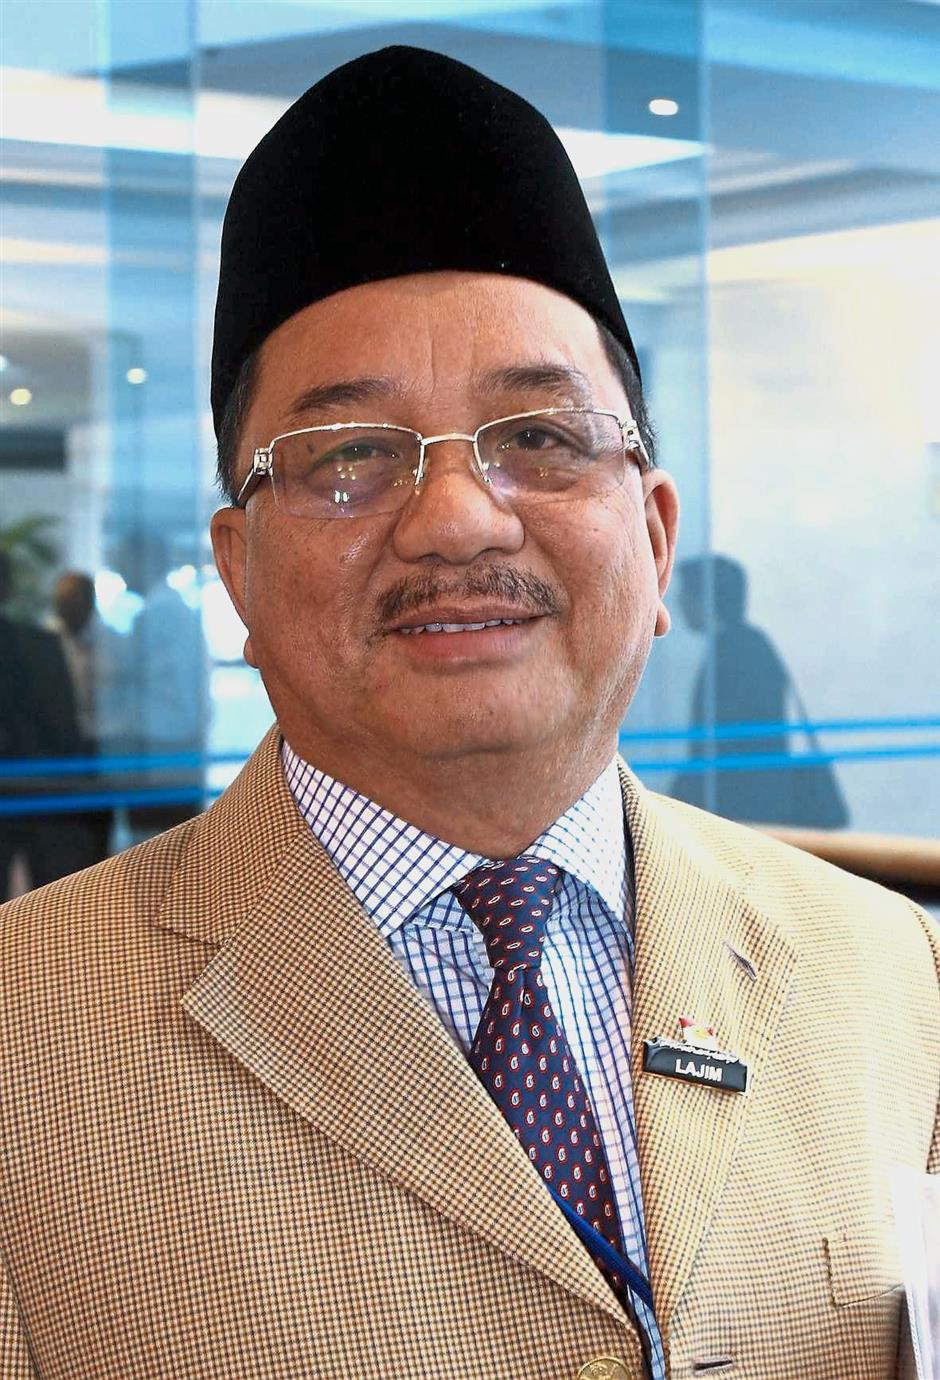 Lajim: Sabah Umno's main point of concern in the 2013 elections.